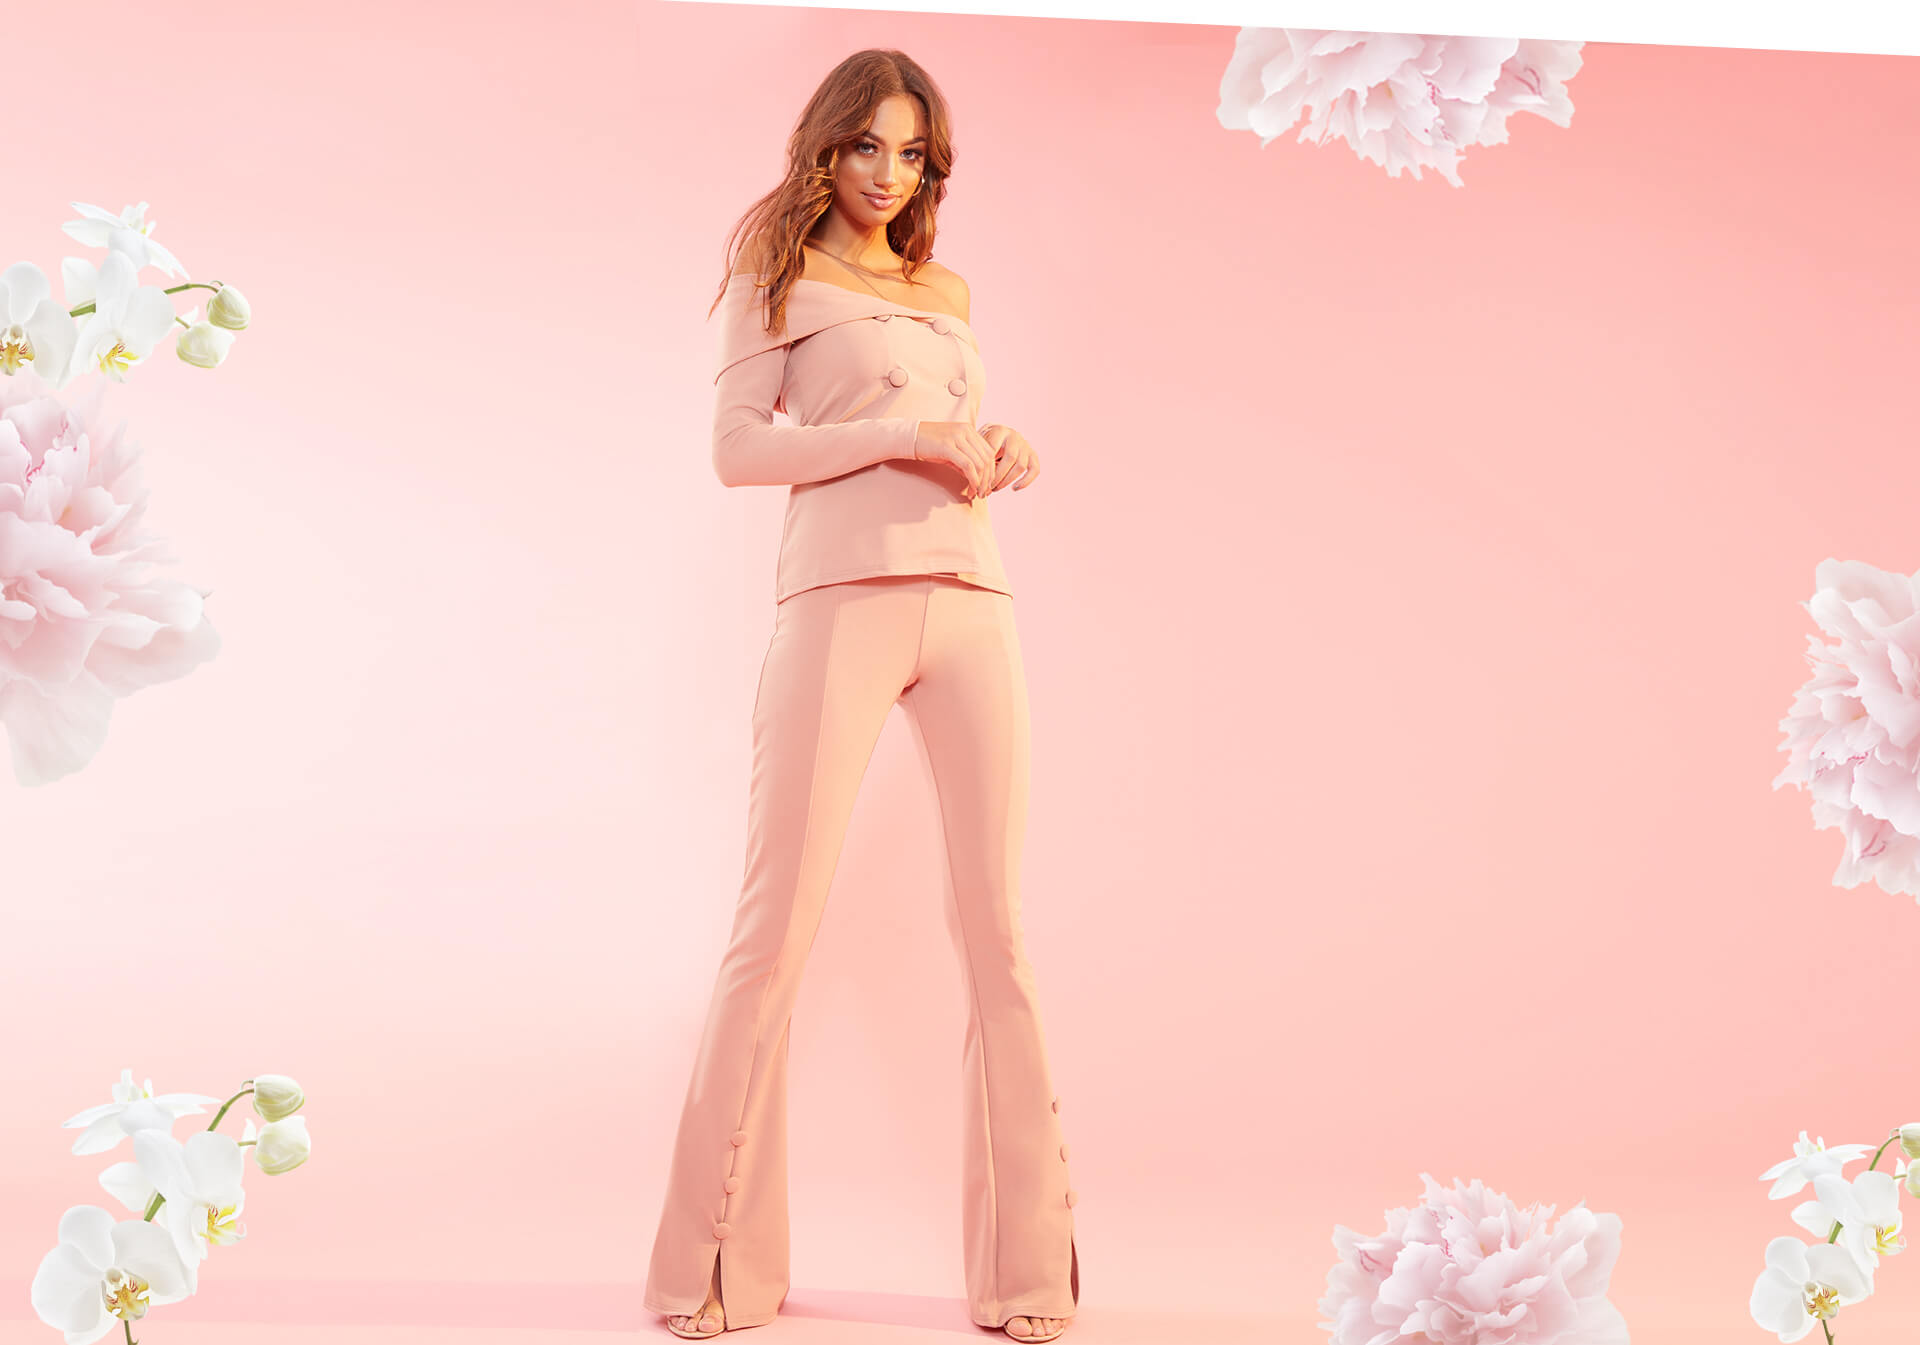 Occasionwear Shoot 7 Light Pink Top & Trousers Desktop